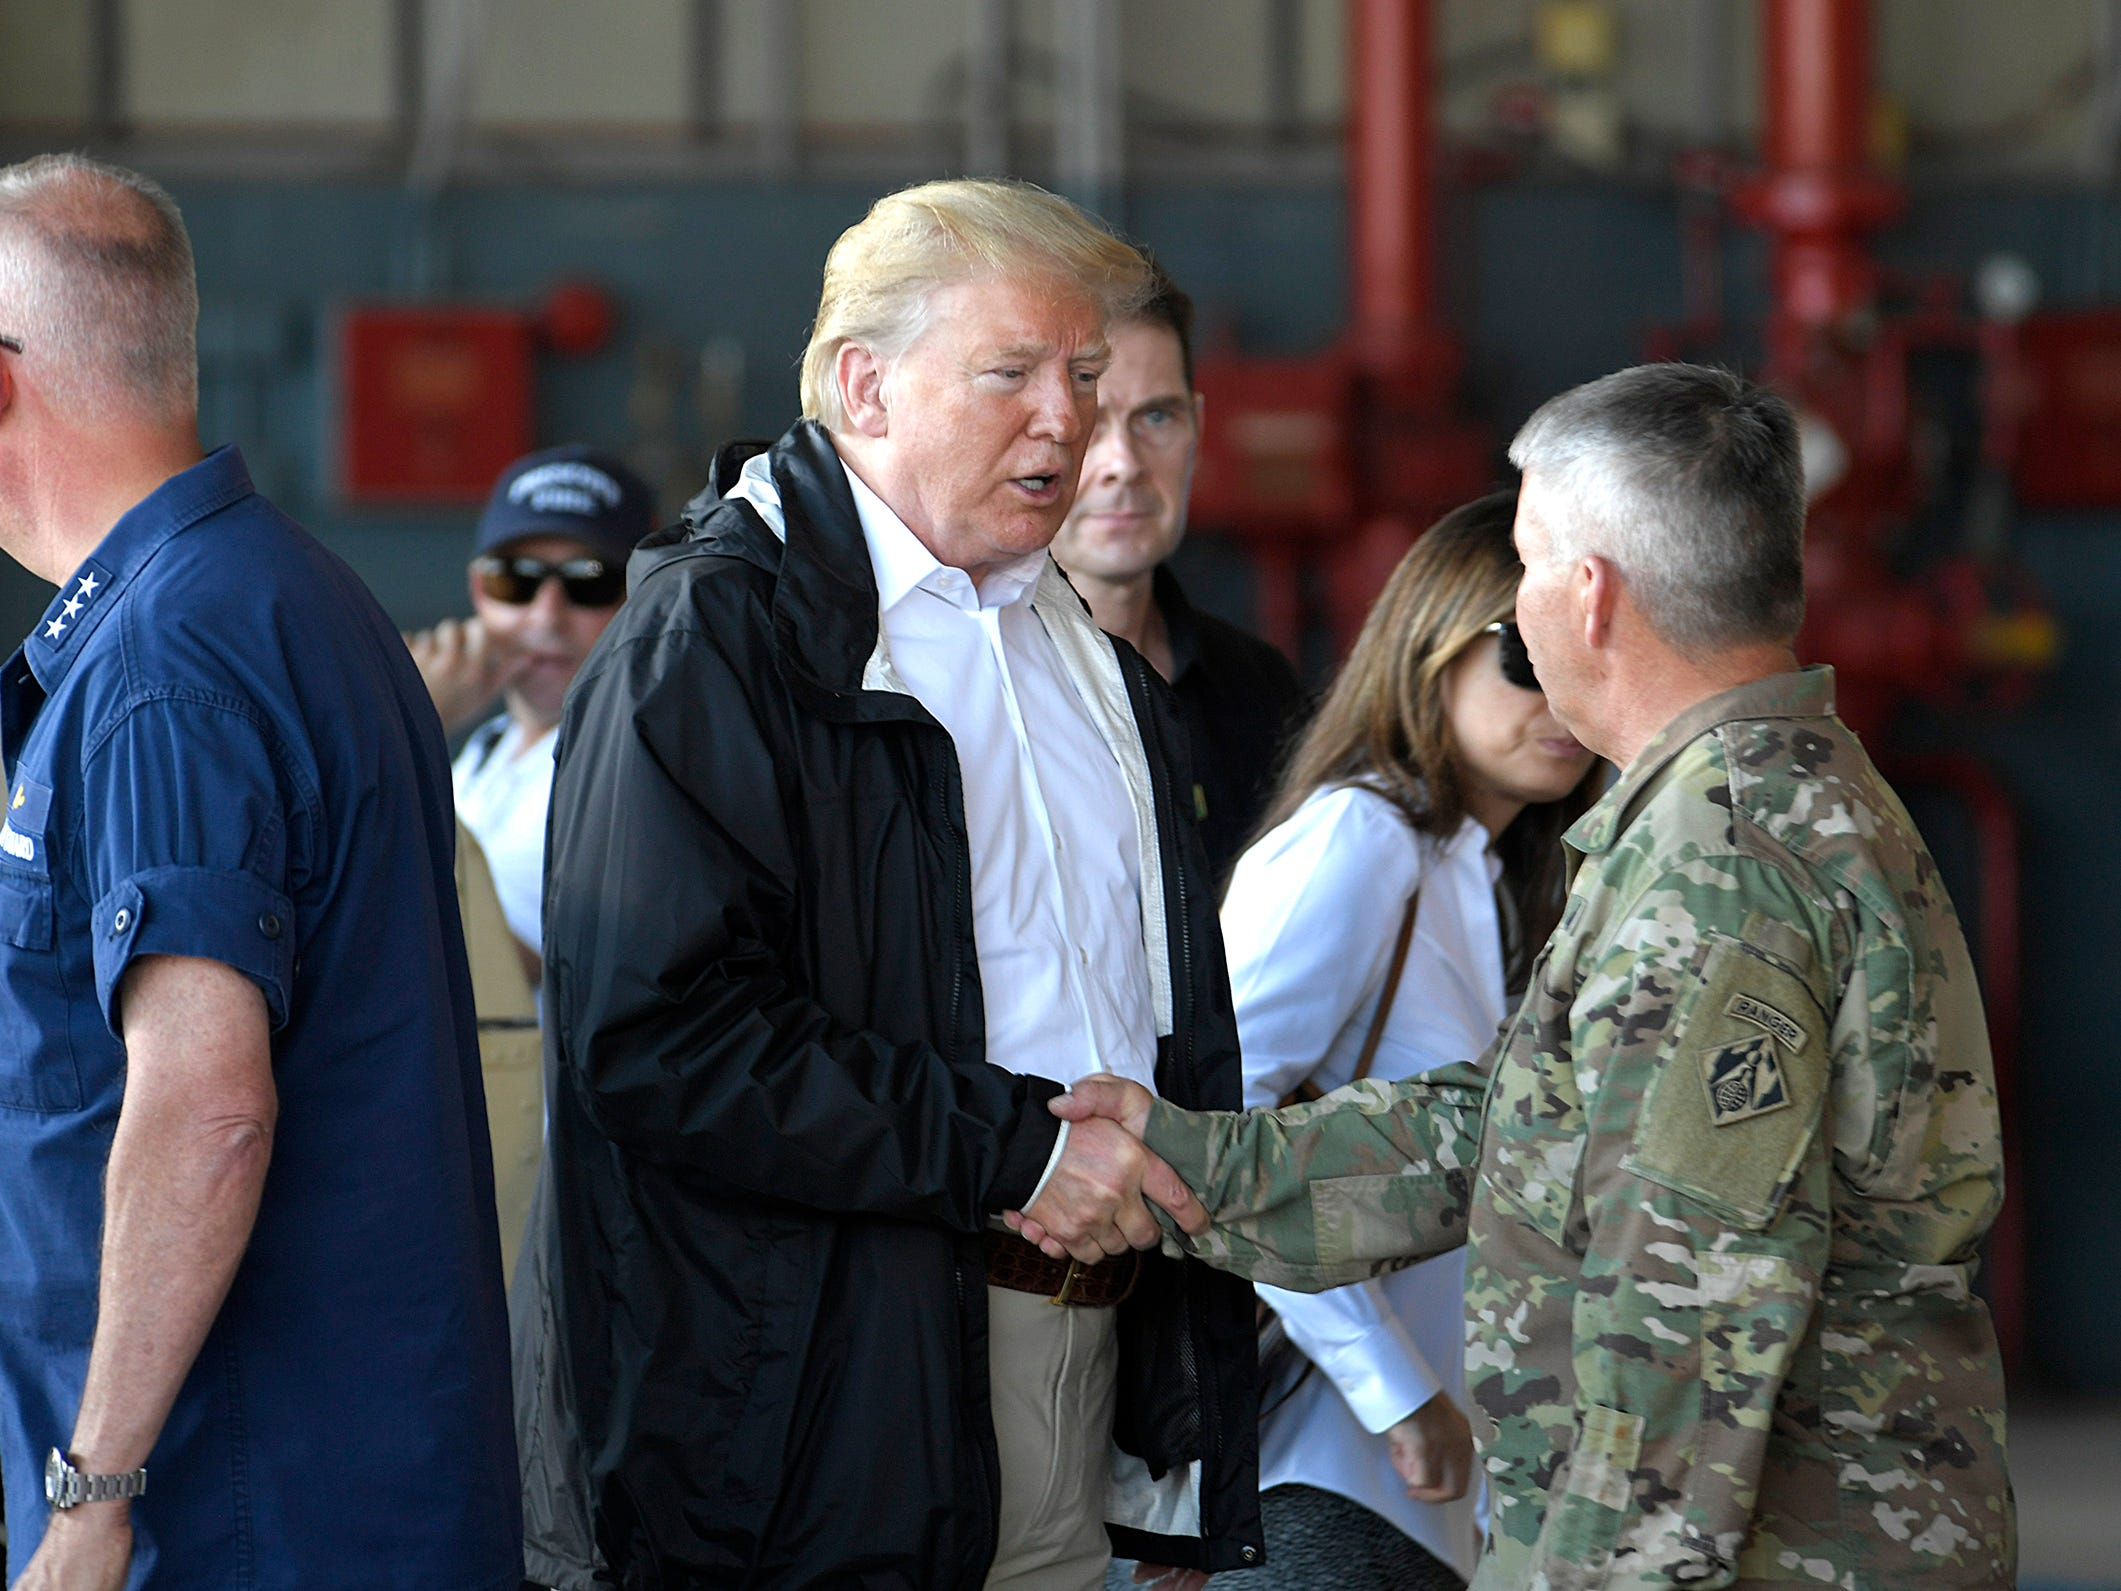 President Donald Trump shake hands with local and state officials during a briefing on Hurricane Florence on the tarmac at Marine Corps Air Station at Cherry Point in Havelock, NC on Wednesday, Sept. 19, 2018.